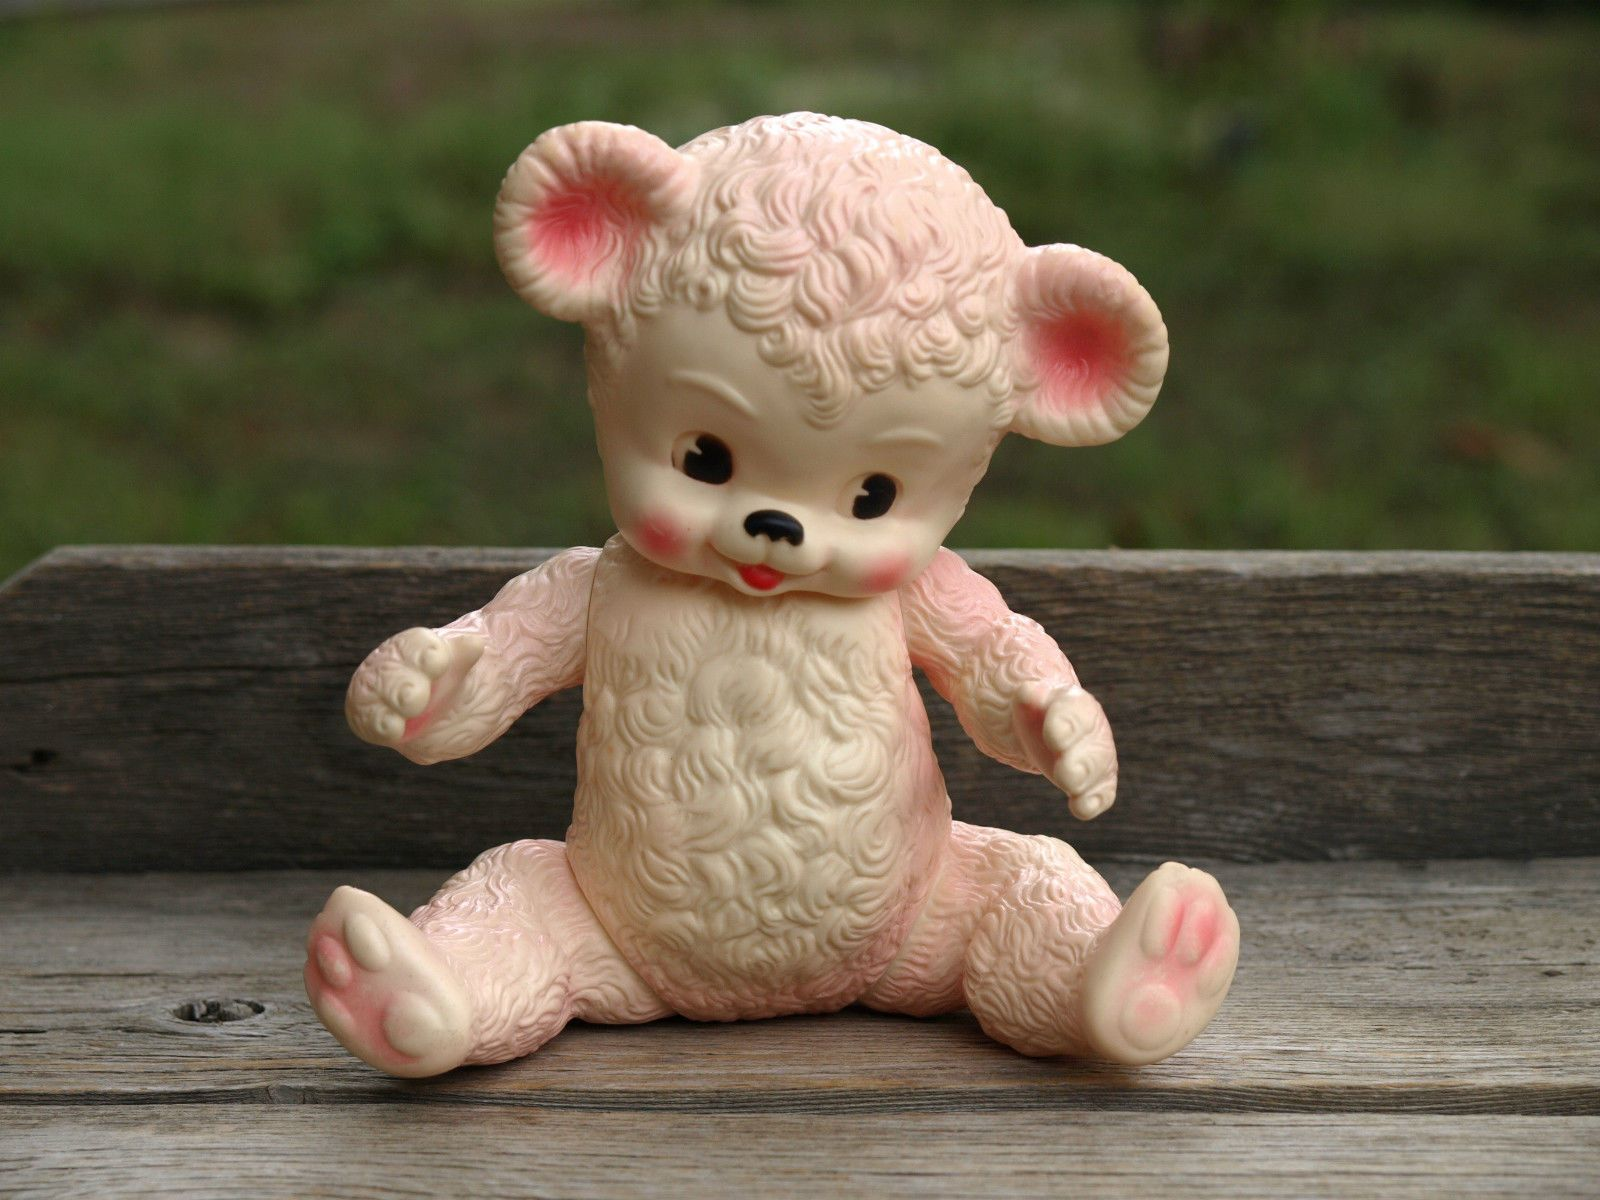 Vintage Sun Rubber Teddy Bear Squeaky Baby Toy Pink White